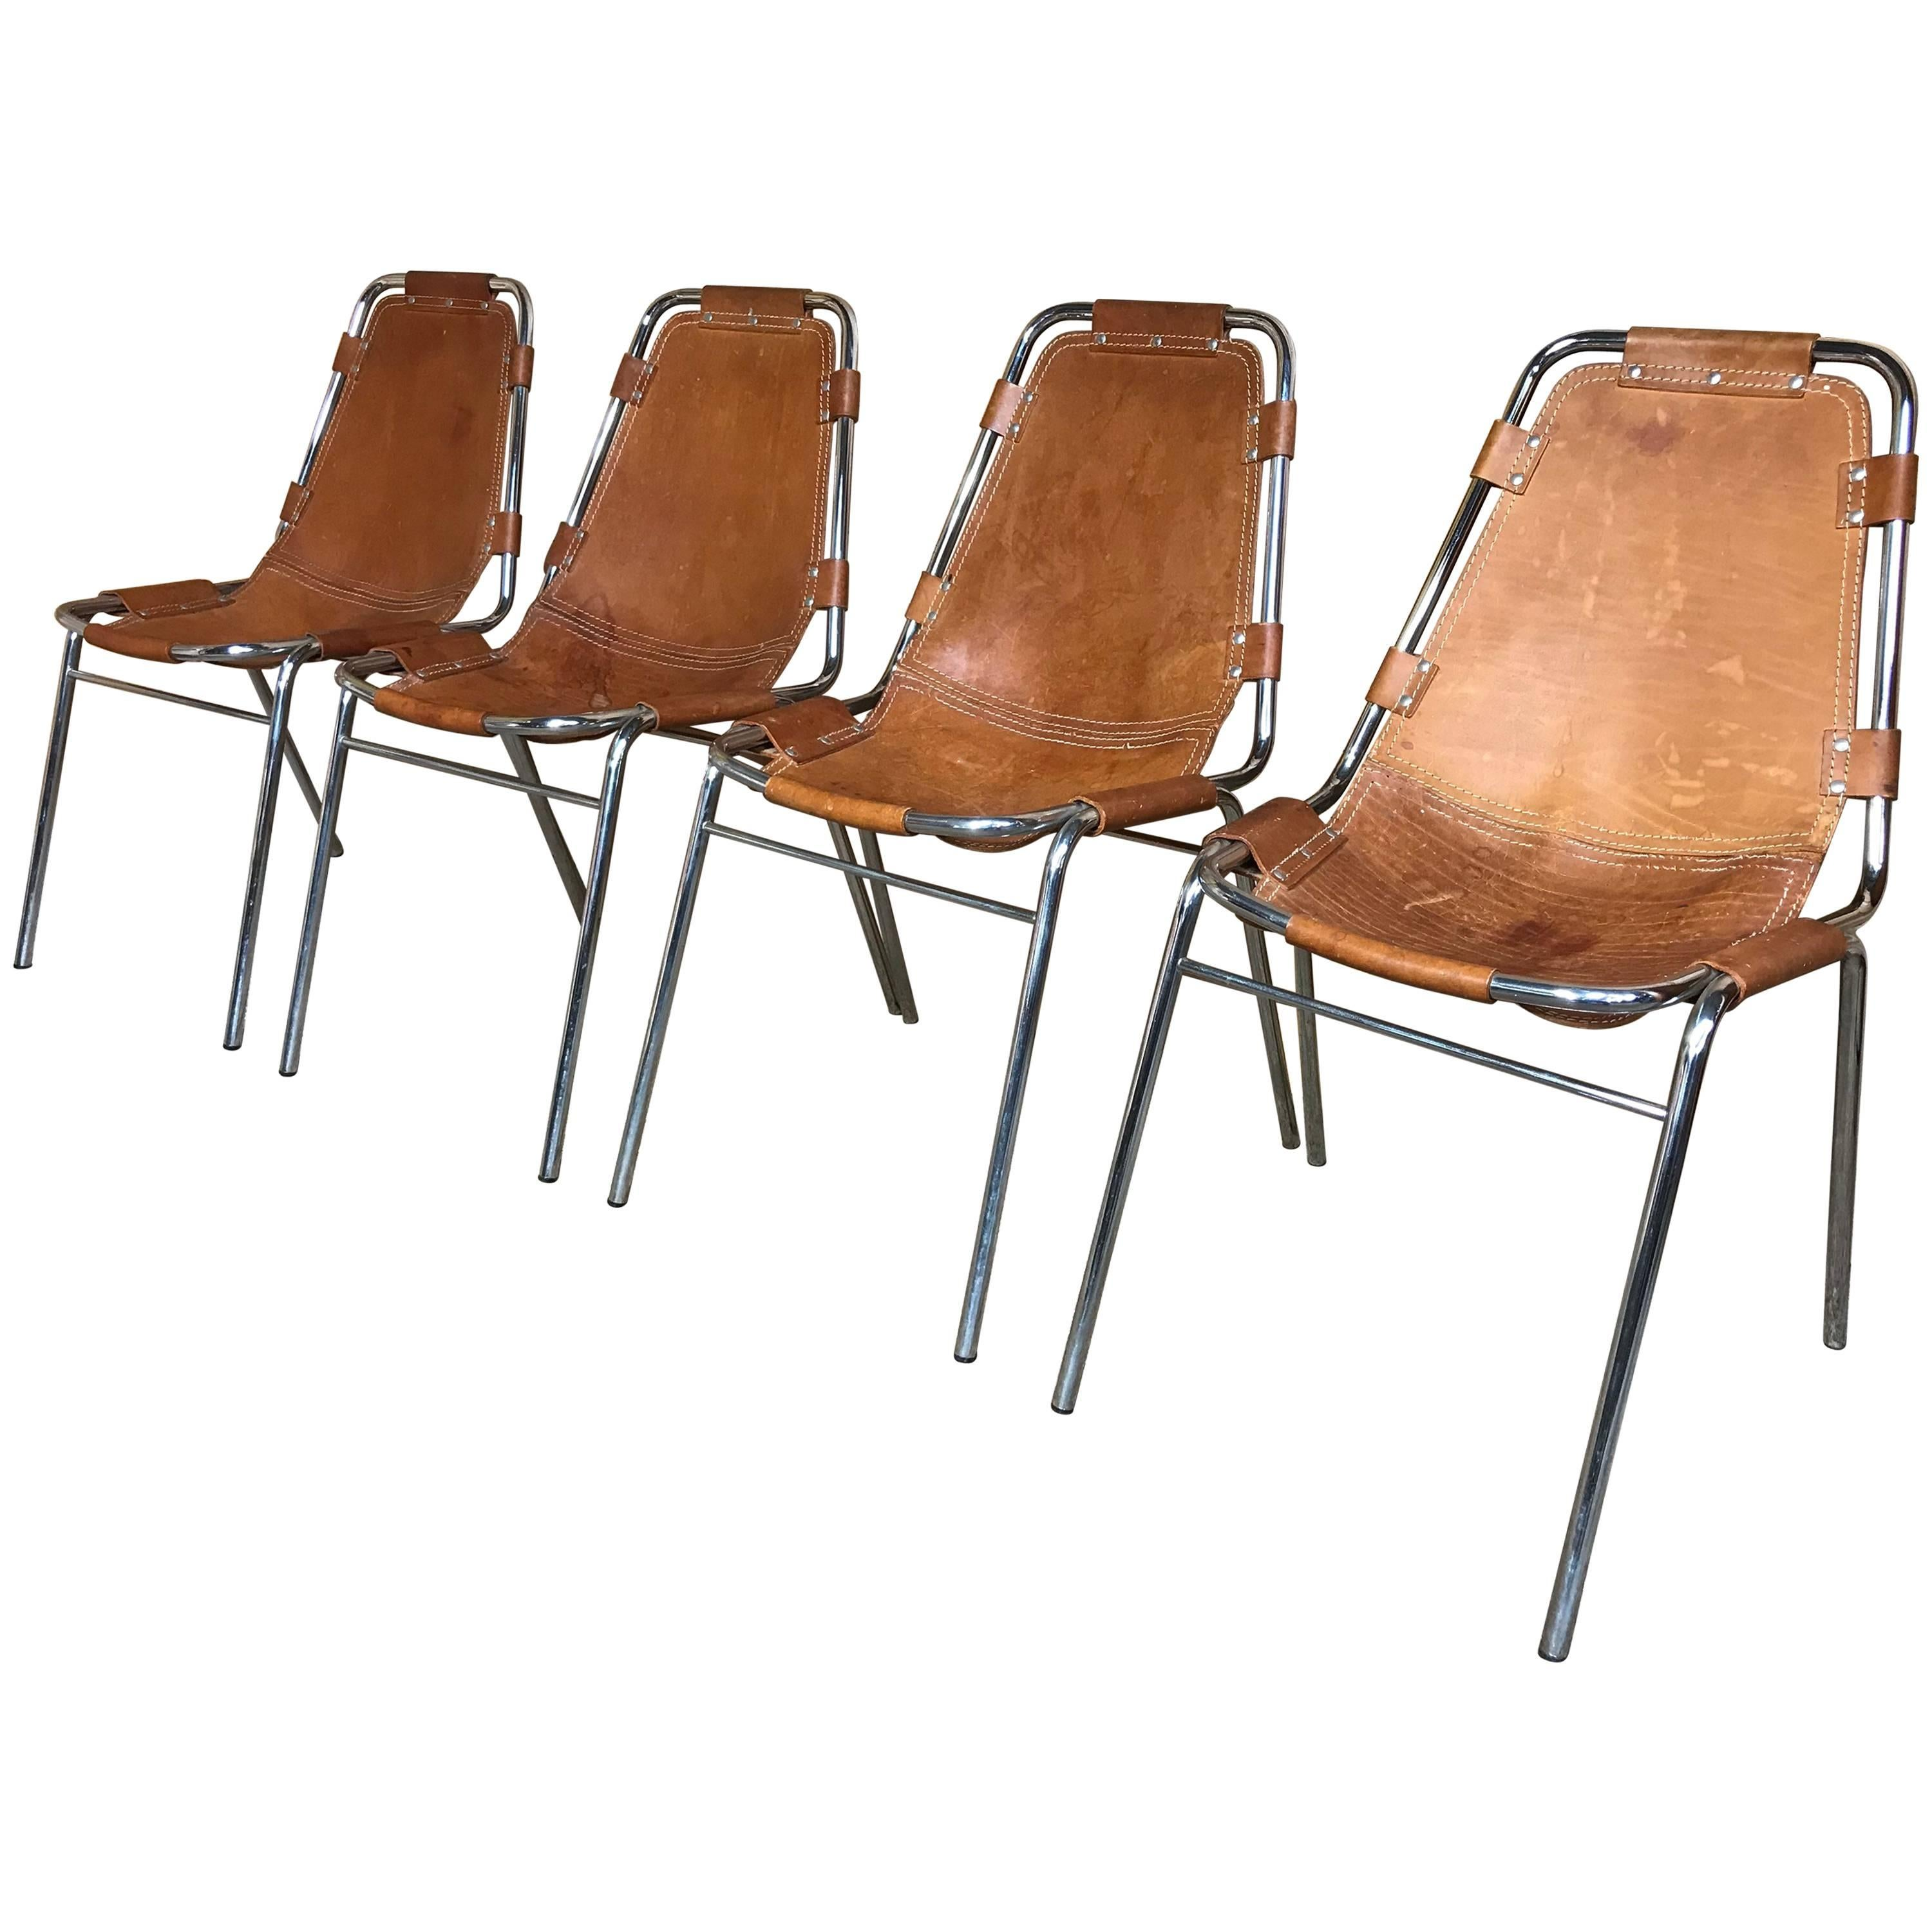 Les Arcs Chairs Chosen by Charlotte Perriand, 1960s, Set of Four